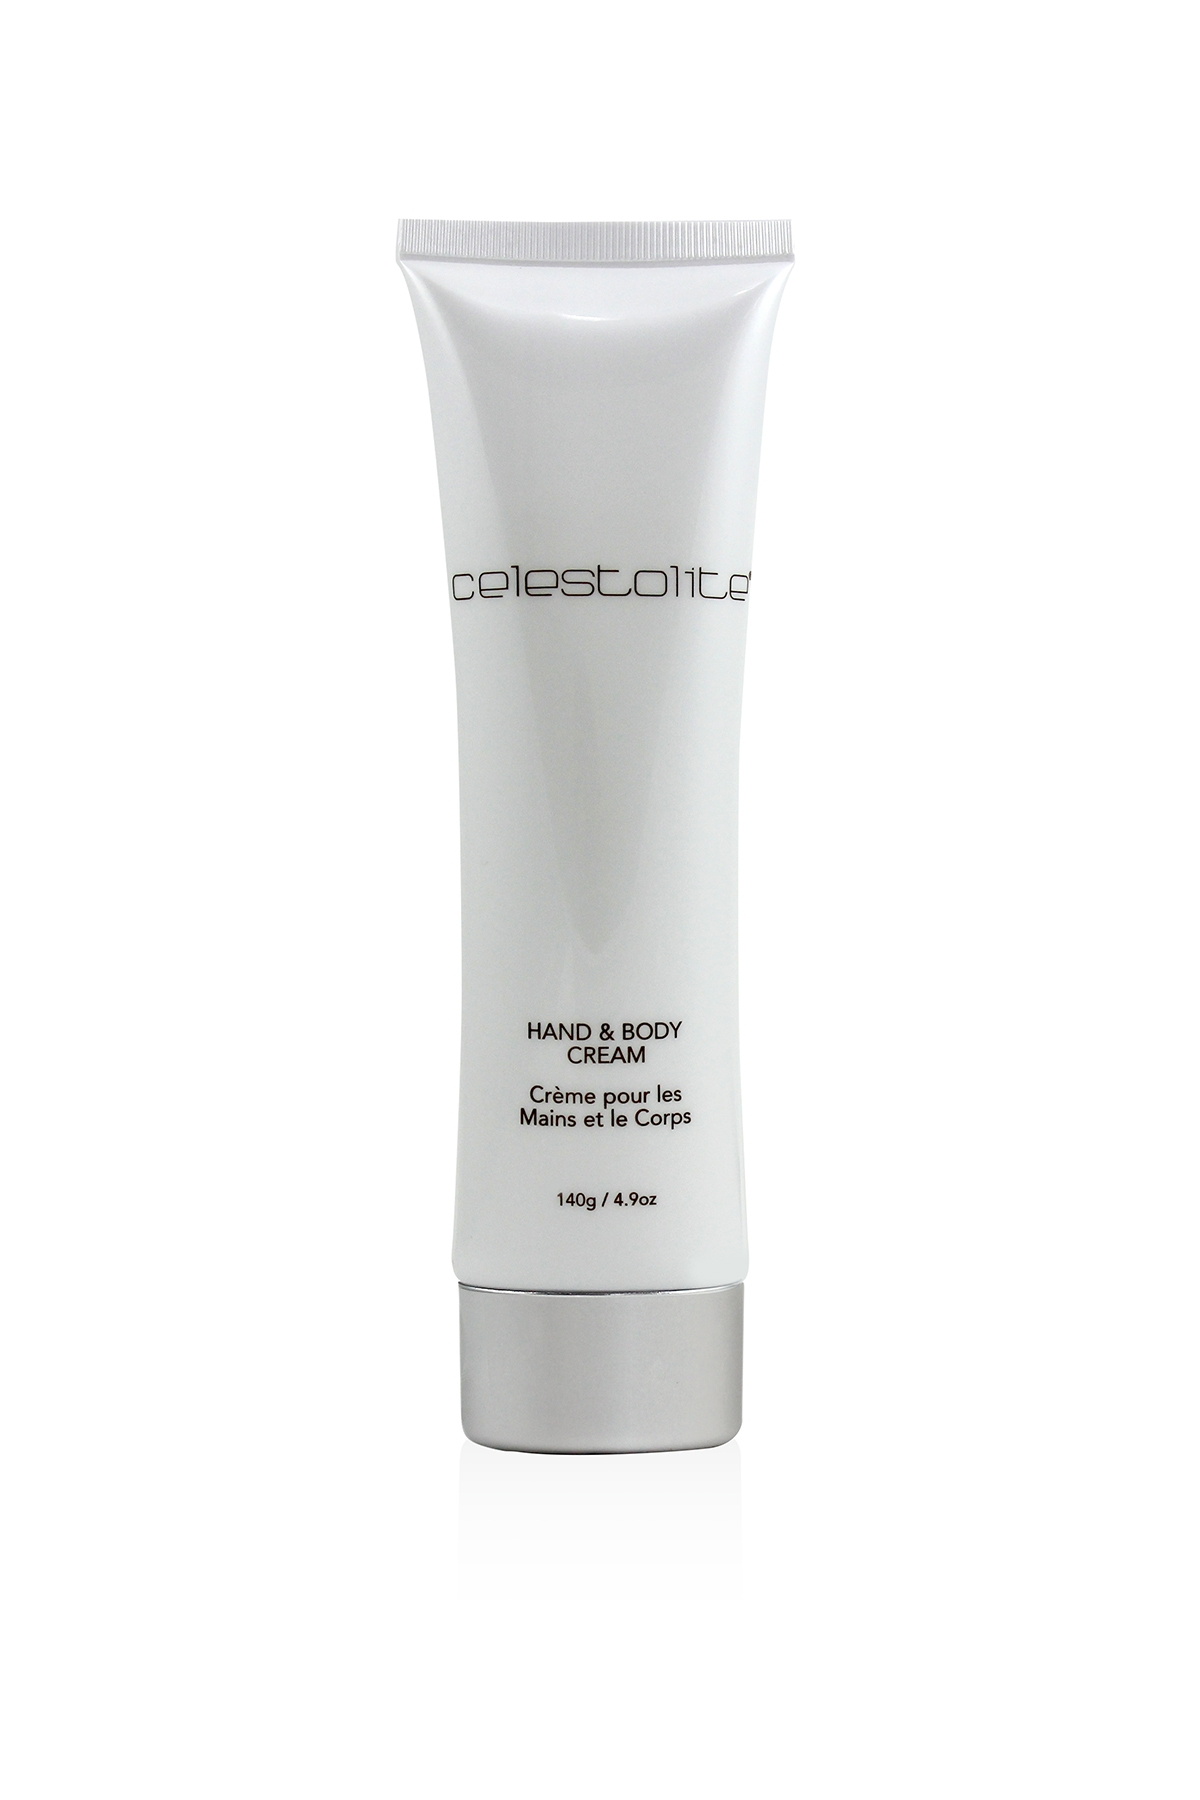 Celestolite Hand and Body Cream